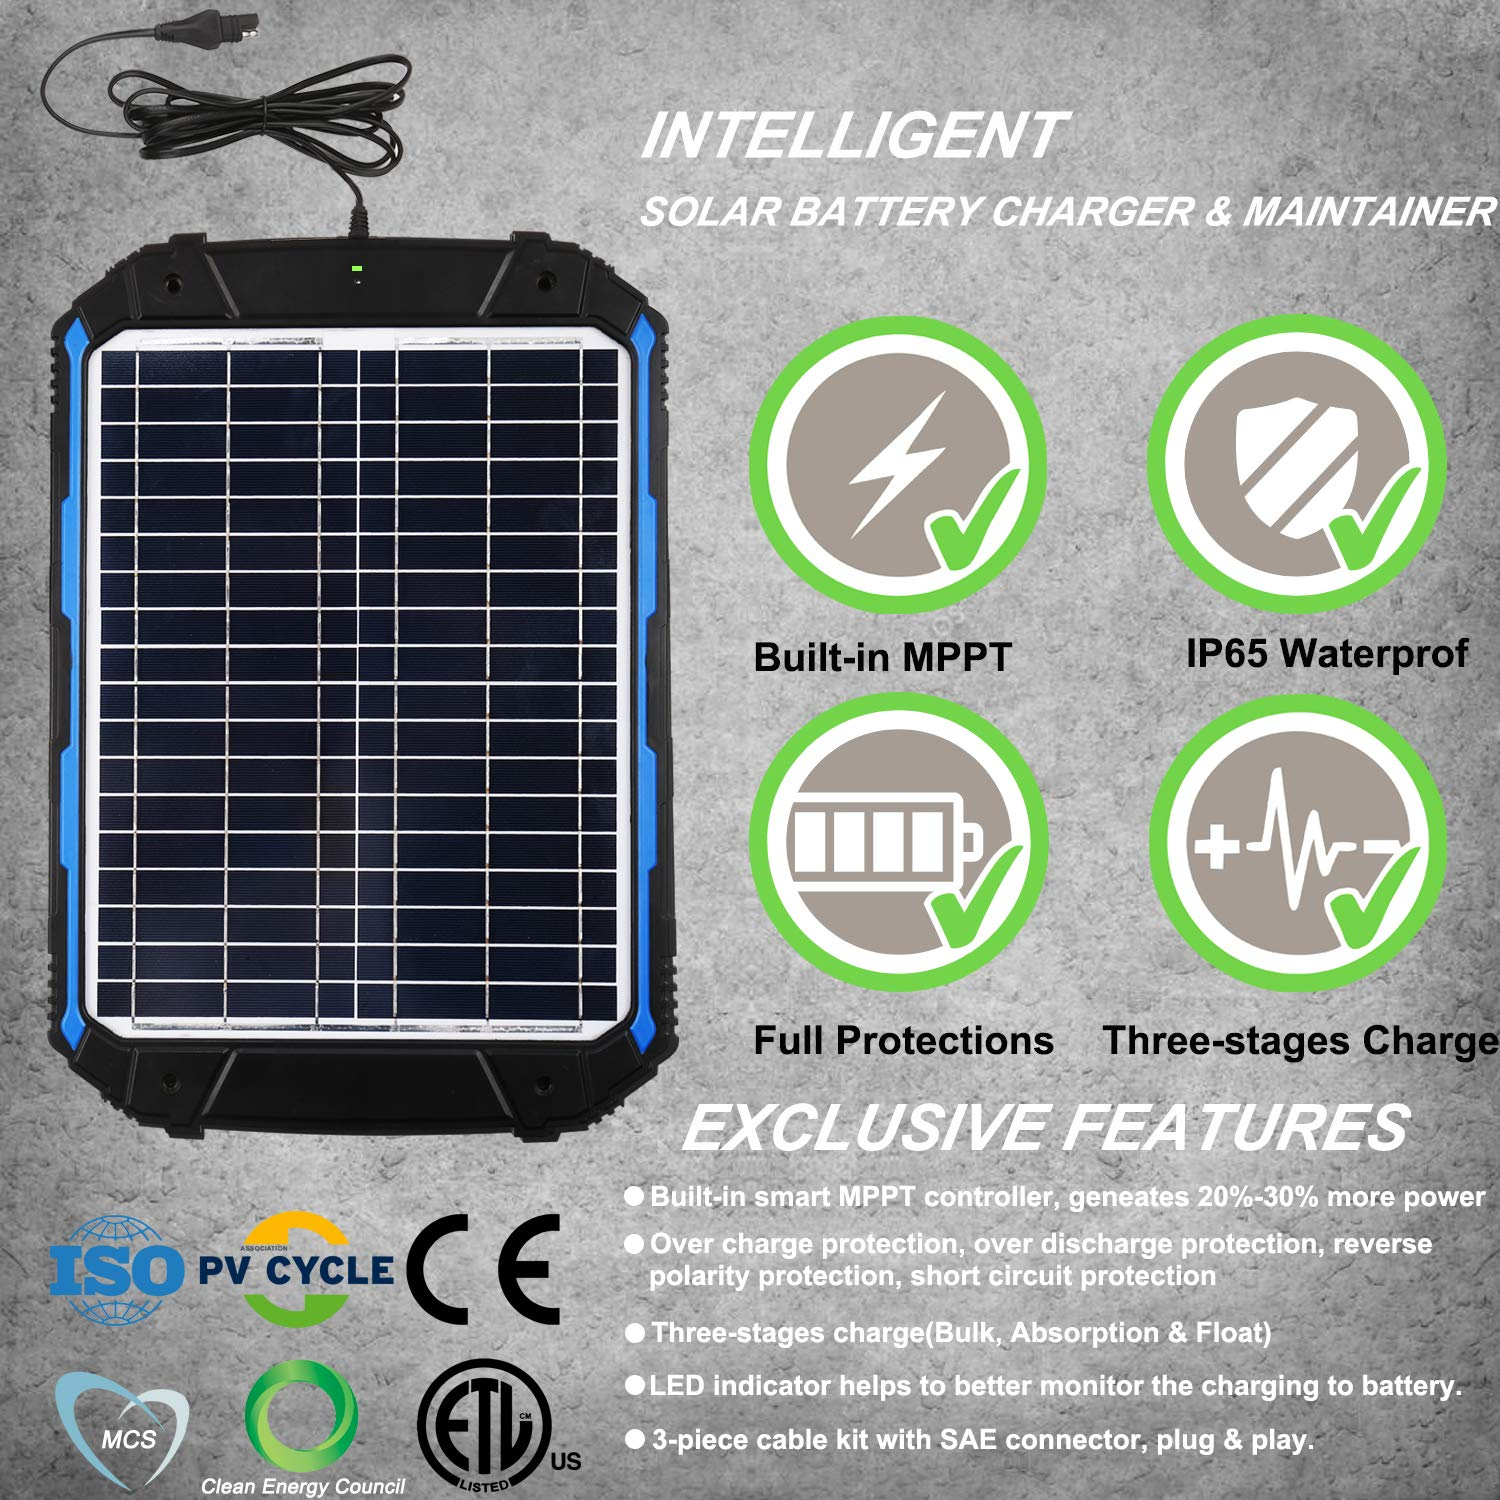 Motorcycle Built-in Intelligent MPPT Charge Controller 18W Solar Panel Trickle Charging Kit for Car etc SUNER POWER Upgraded 12V Waterproof Solar Battery Charger /& Maintainer Pro Marine RV